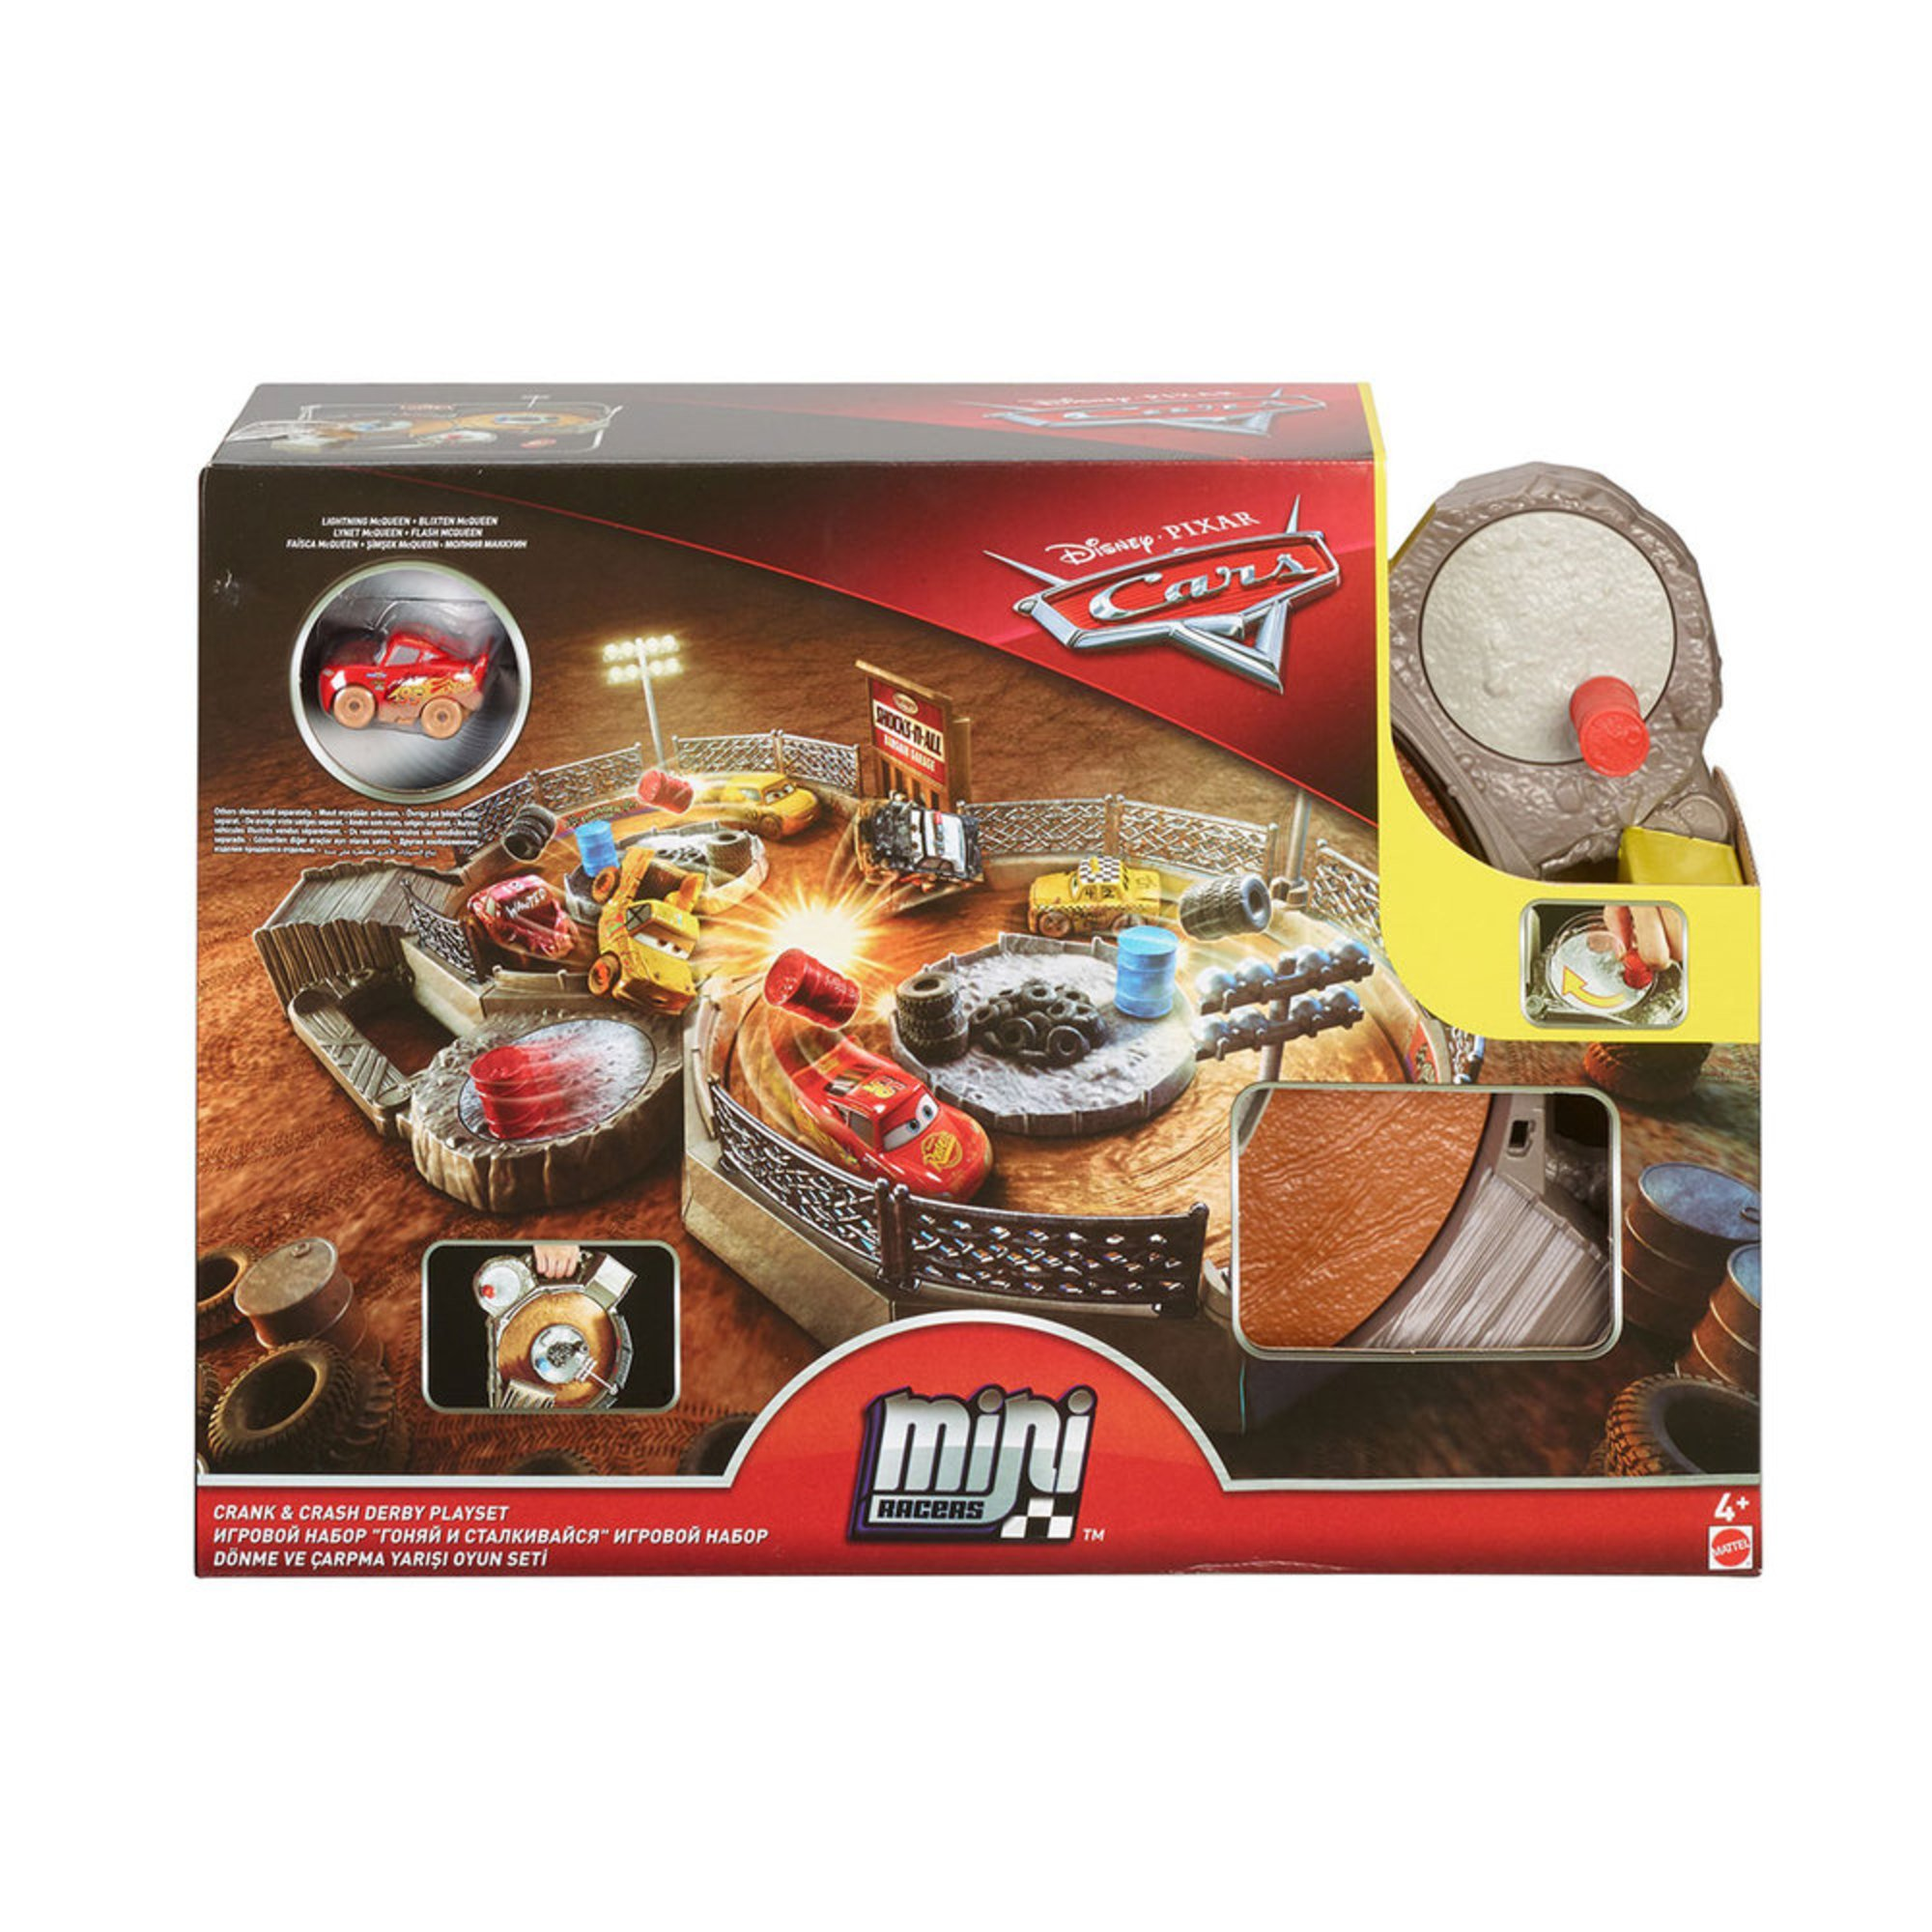 Disney Cars Mini Racers Crank Crash Derby Playset Racetracks